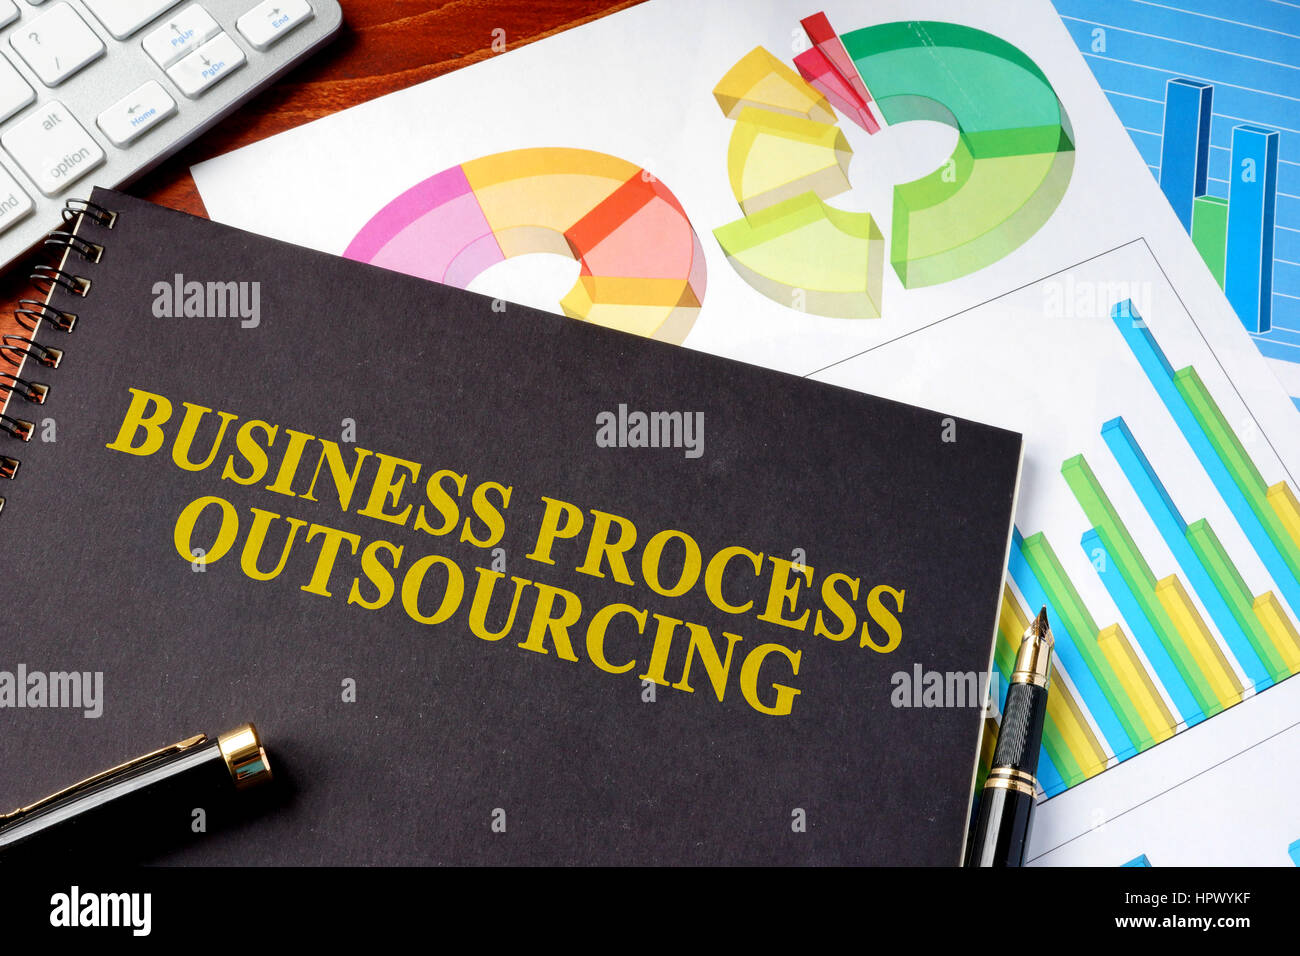 Book with title Business Process Outsourcing BPO. - Stock Image